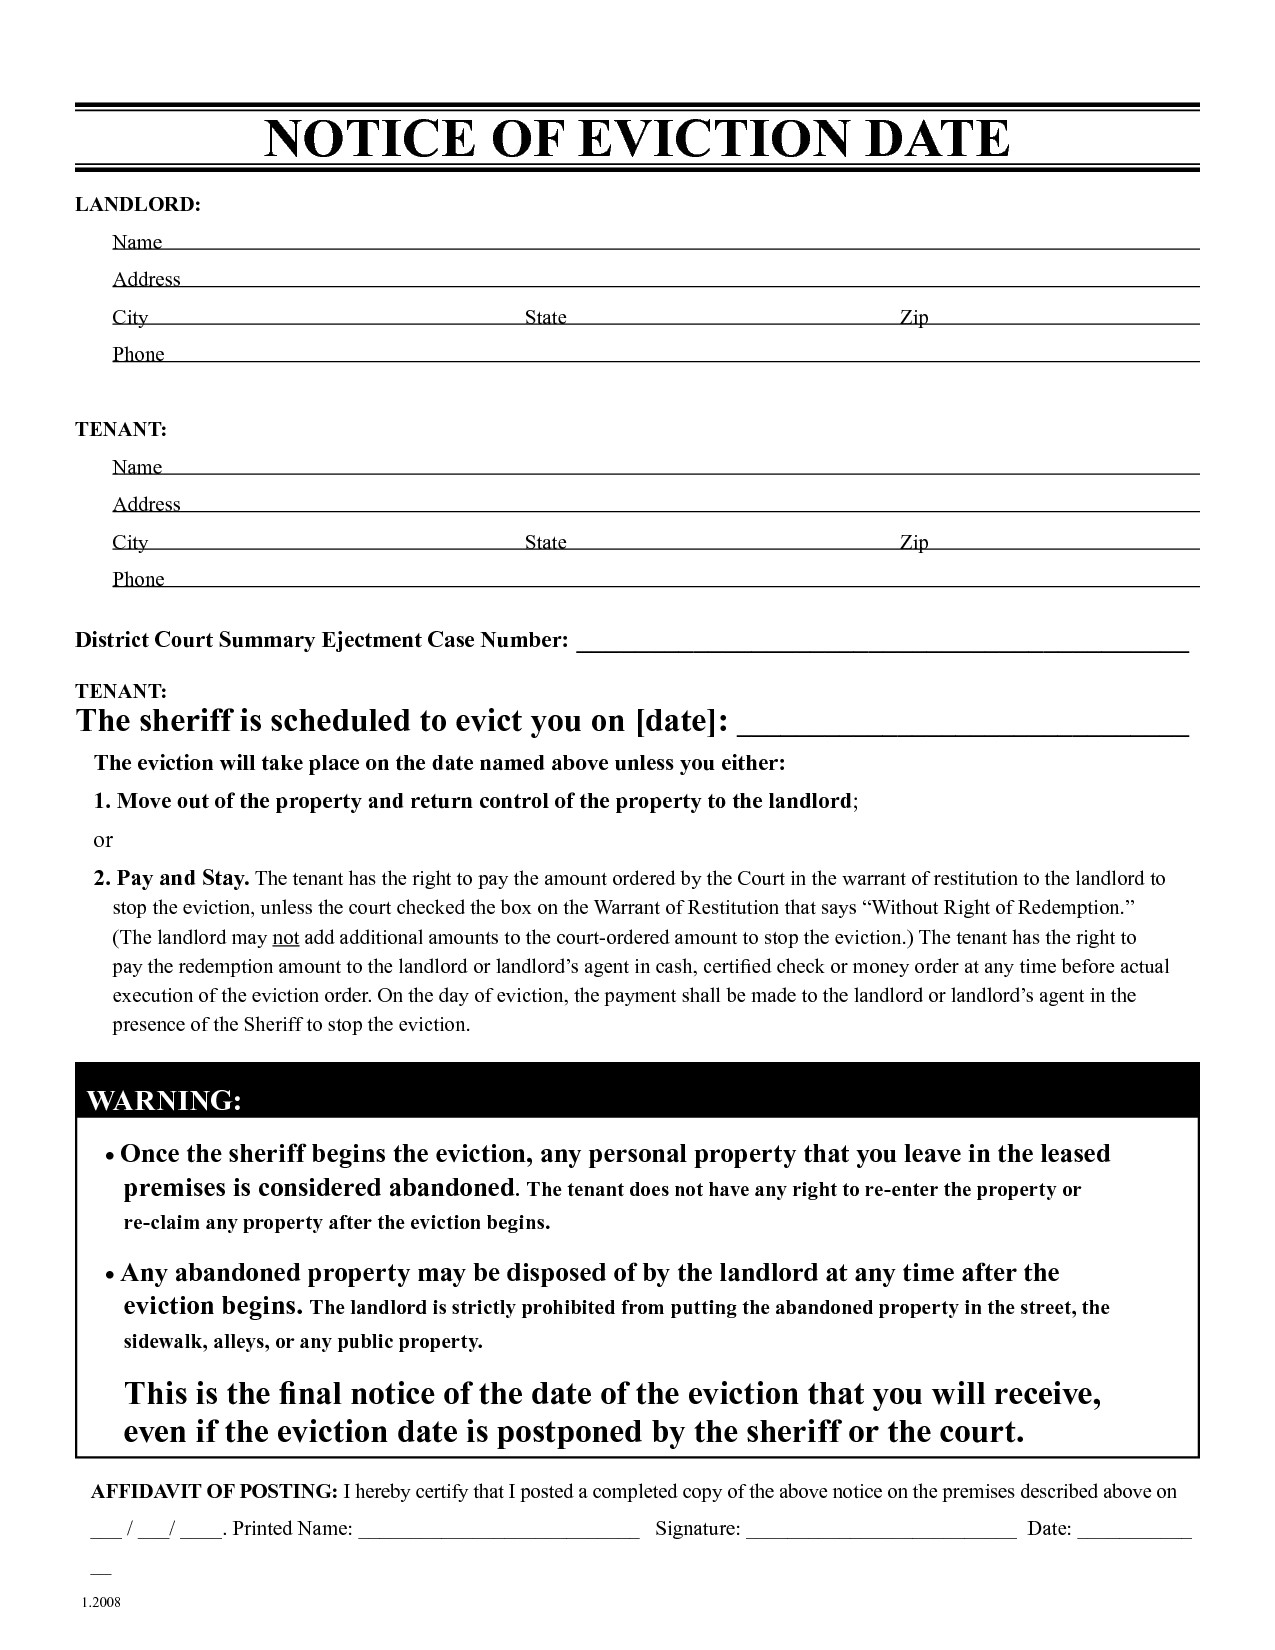 30 Day Eviction Letter Template - Free Eviction Notice form Beautiful 30 Day Move Out Notice Template